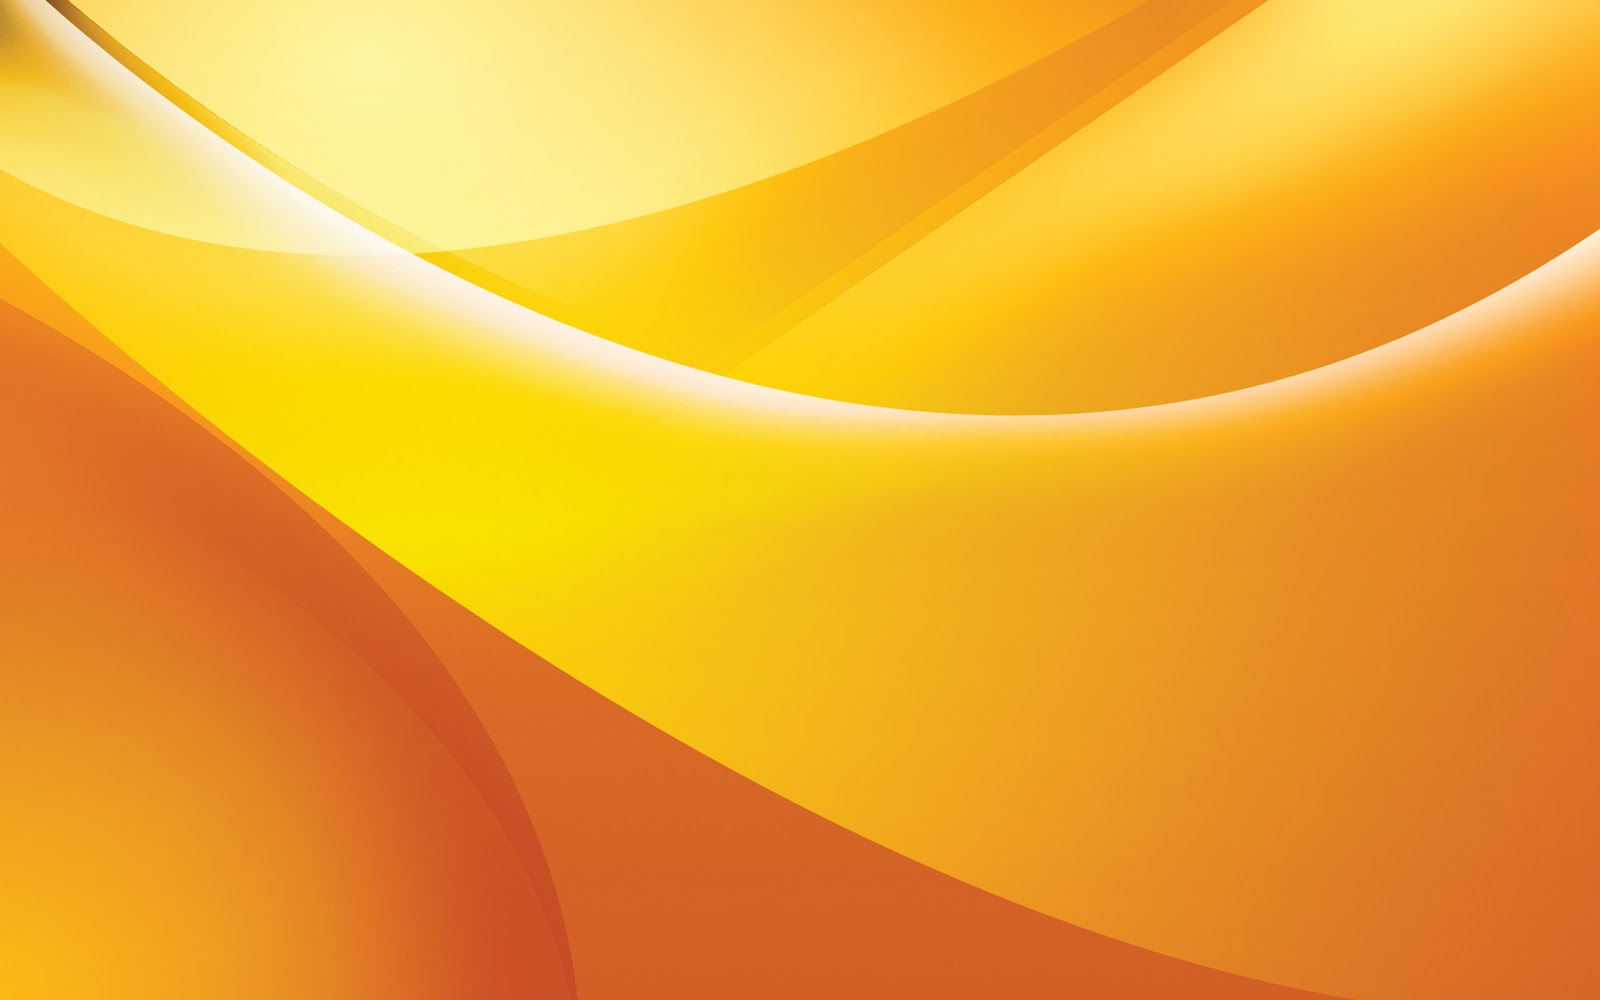 Abstract Orange Design Wallpapers HD Wallpapers 1600x1000